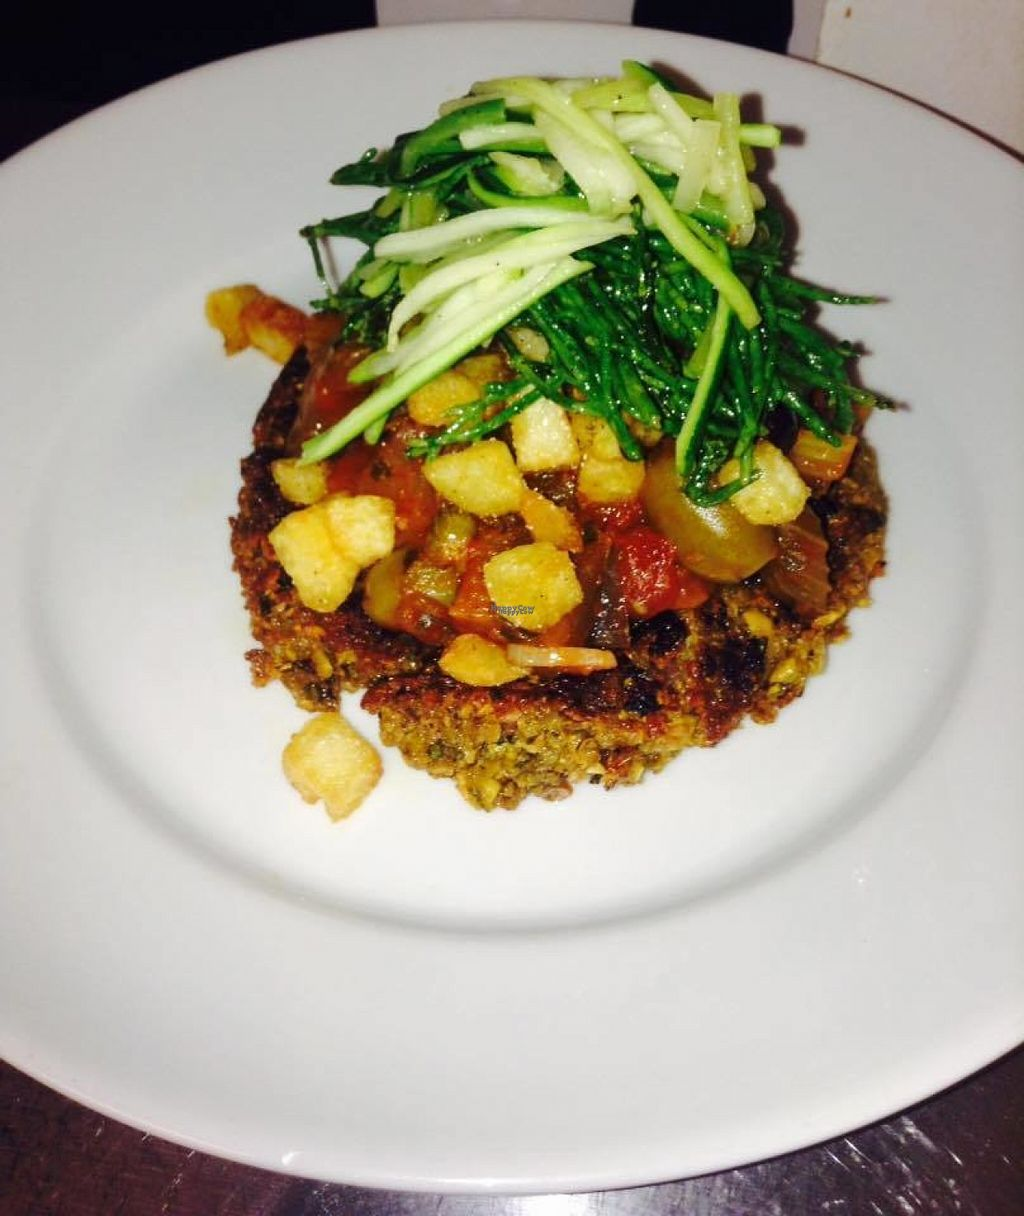 """Photo of CLOSED: The Vittoria  by <a href=""""/members/profile/Meaks"""">Meaks</a> <br/>Spicy chickpea cake with caponata, crispy fried potatoes, courgette spaghetti and samphire <br/> August 3, 2016  - <a href='/contact/abuse/image/66718/164836'>Report</a>"""